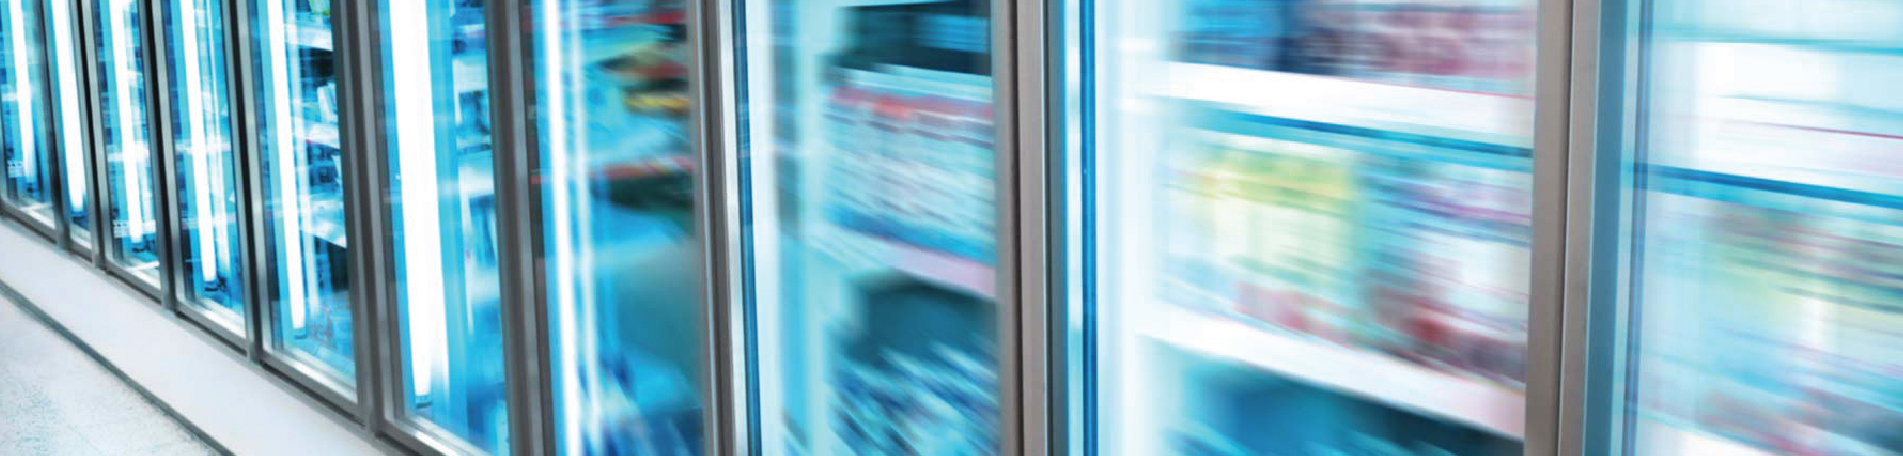 Commercial Refrigeration Equipment Service Maintenance